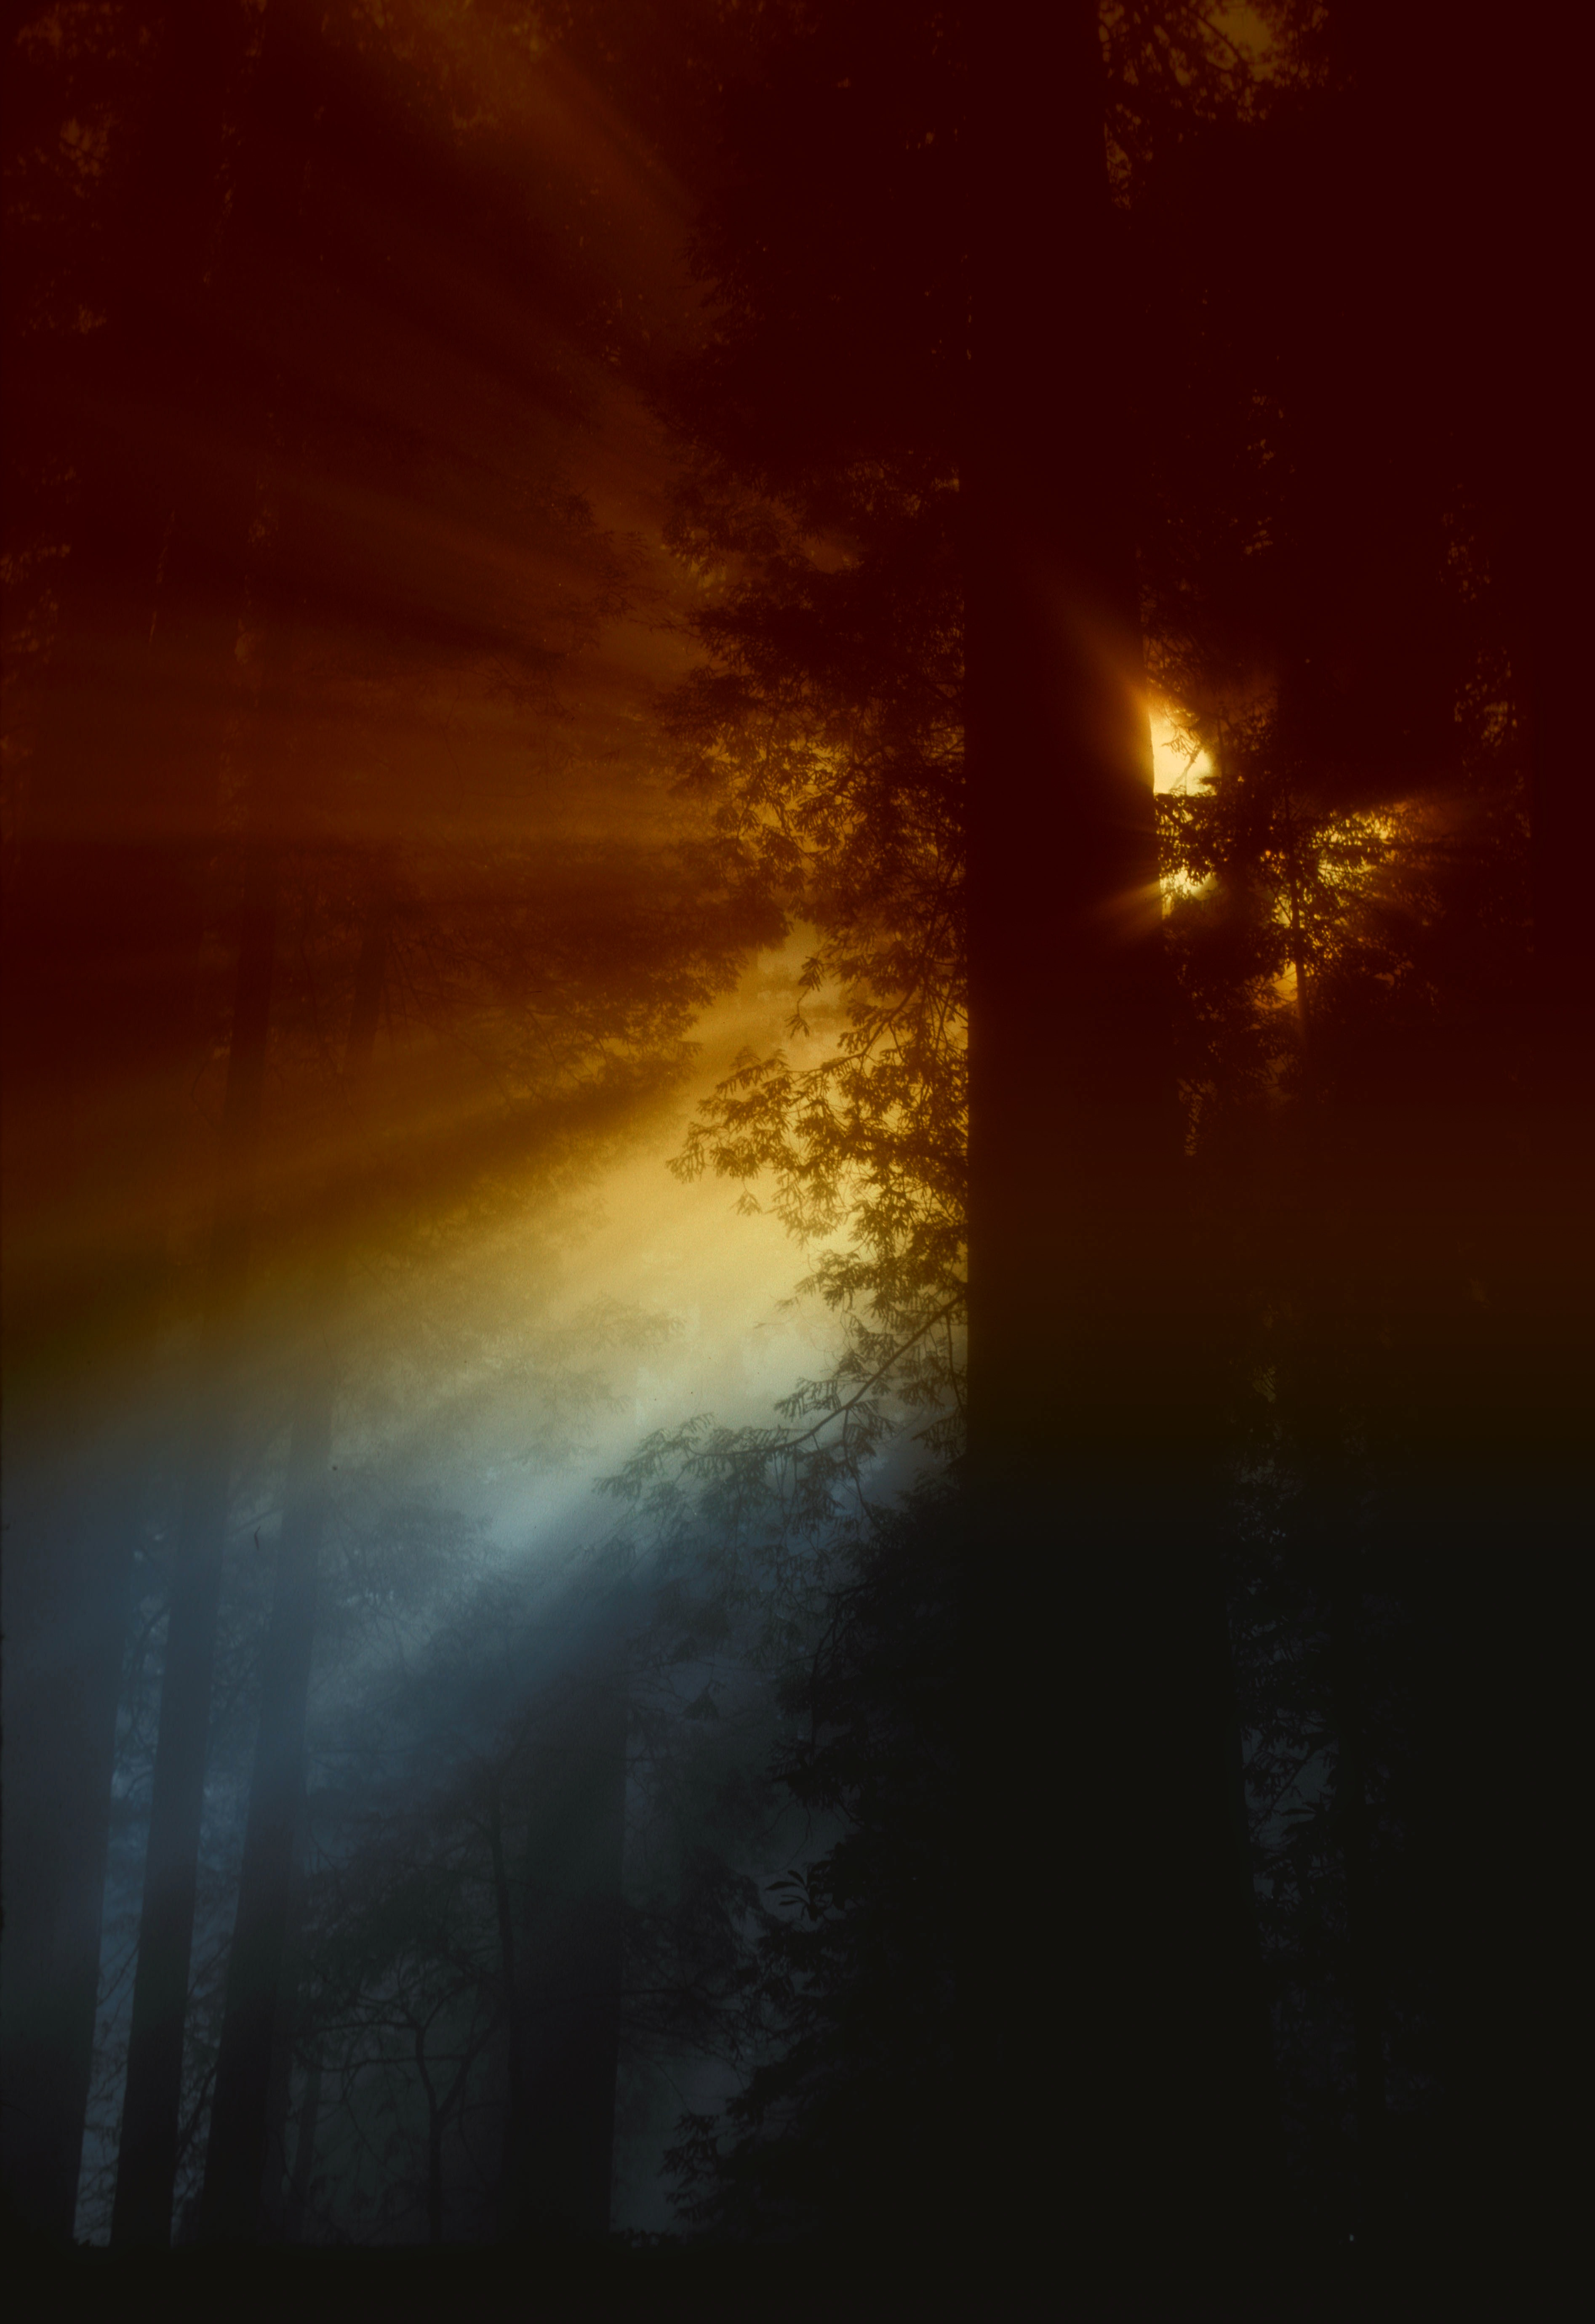 Forest Black And White Wallpaper Ray Of Sunlight Flowing In Trees 183 Free Stock Photo